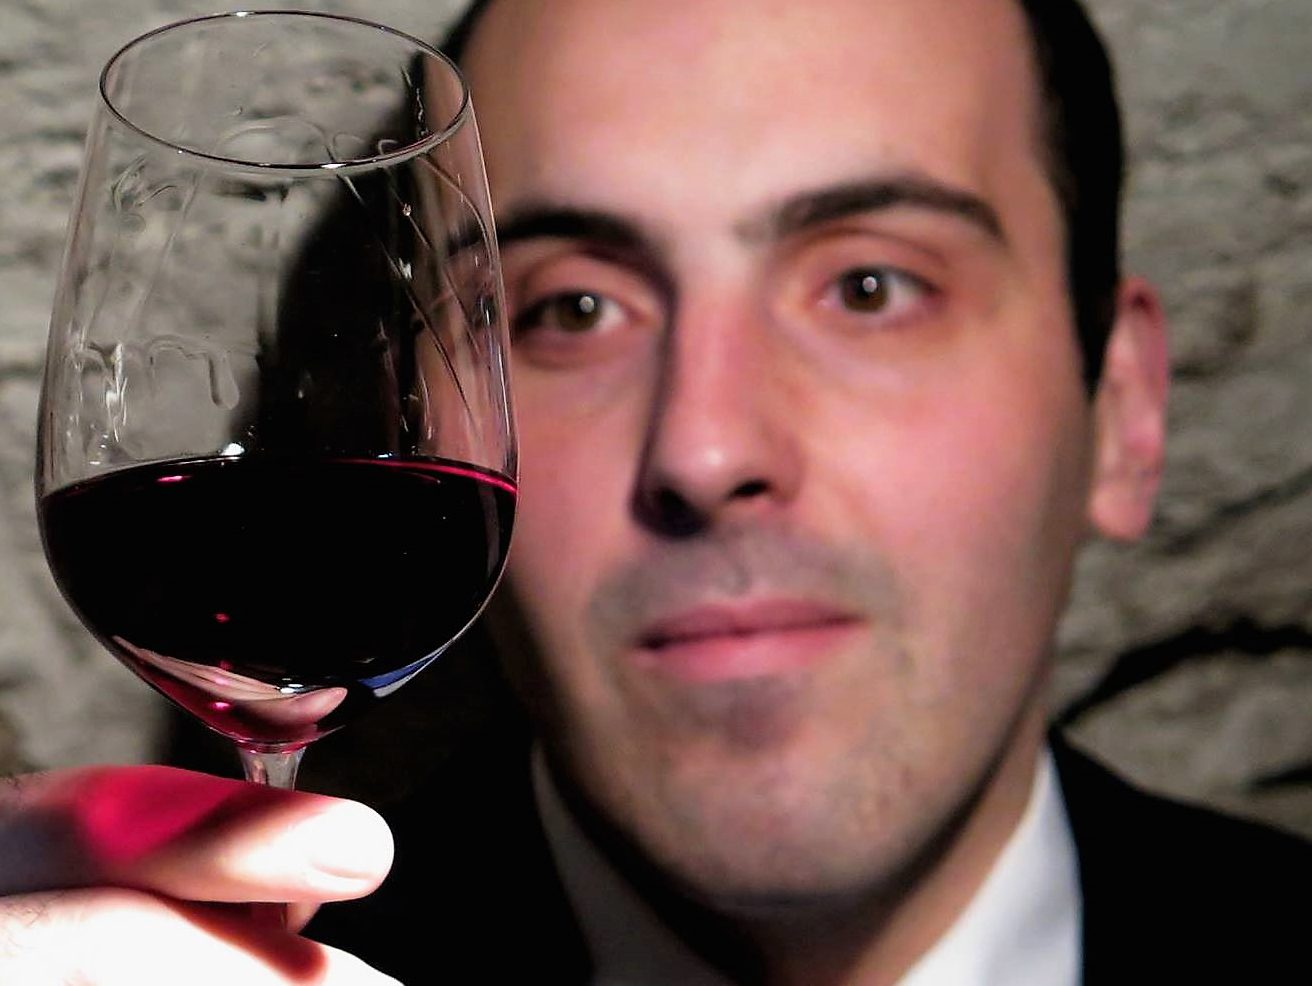 La Pyramide Sommelier Baptiste Cavagna Focuses On Fun, Imaginative Wine Pairings With Dazzling Results